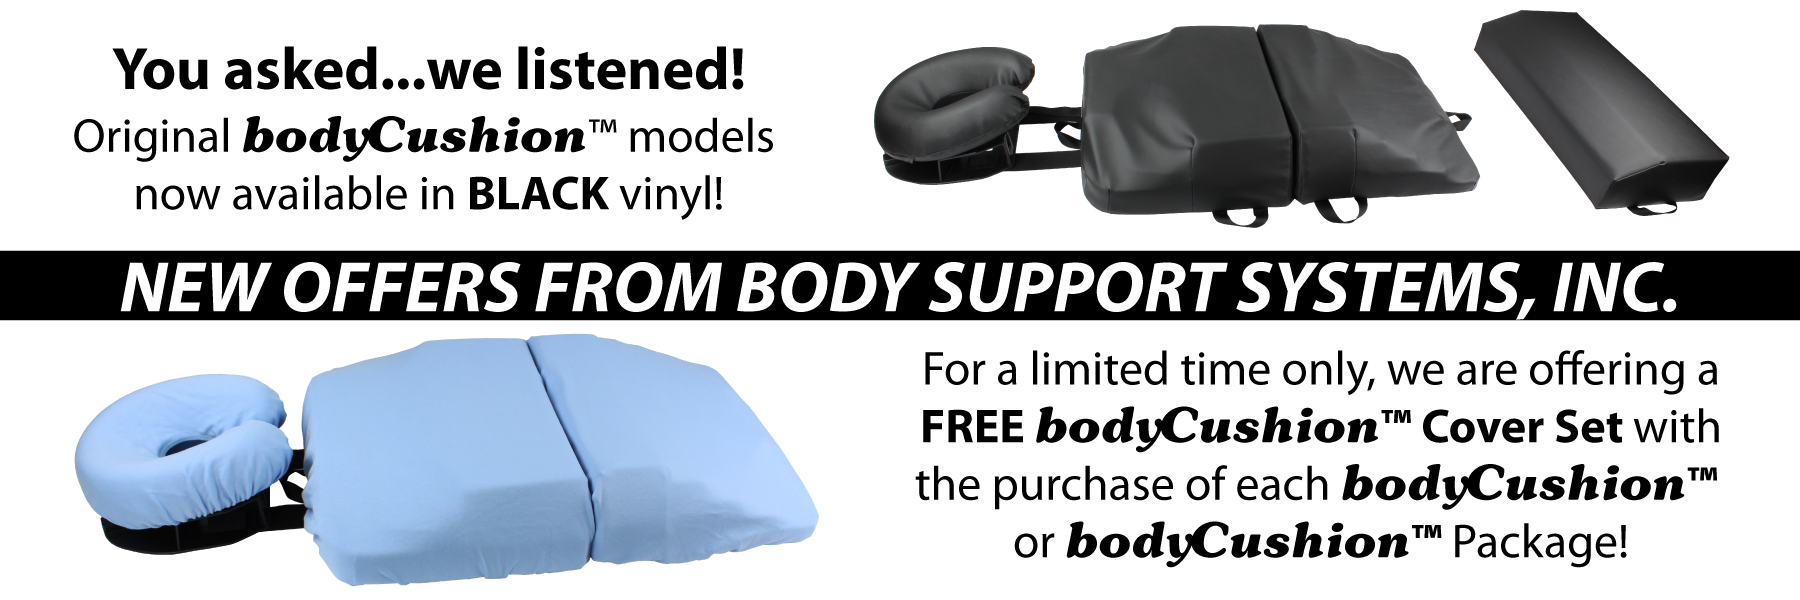 New Offers: Original bodyCushion models now available in Black vinyl! For a limited time only, we are offering a FREE bodyCushion Cover Set with the purchase of each bodyCushion or bodyCushion package!